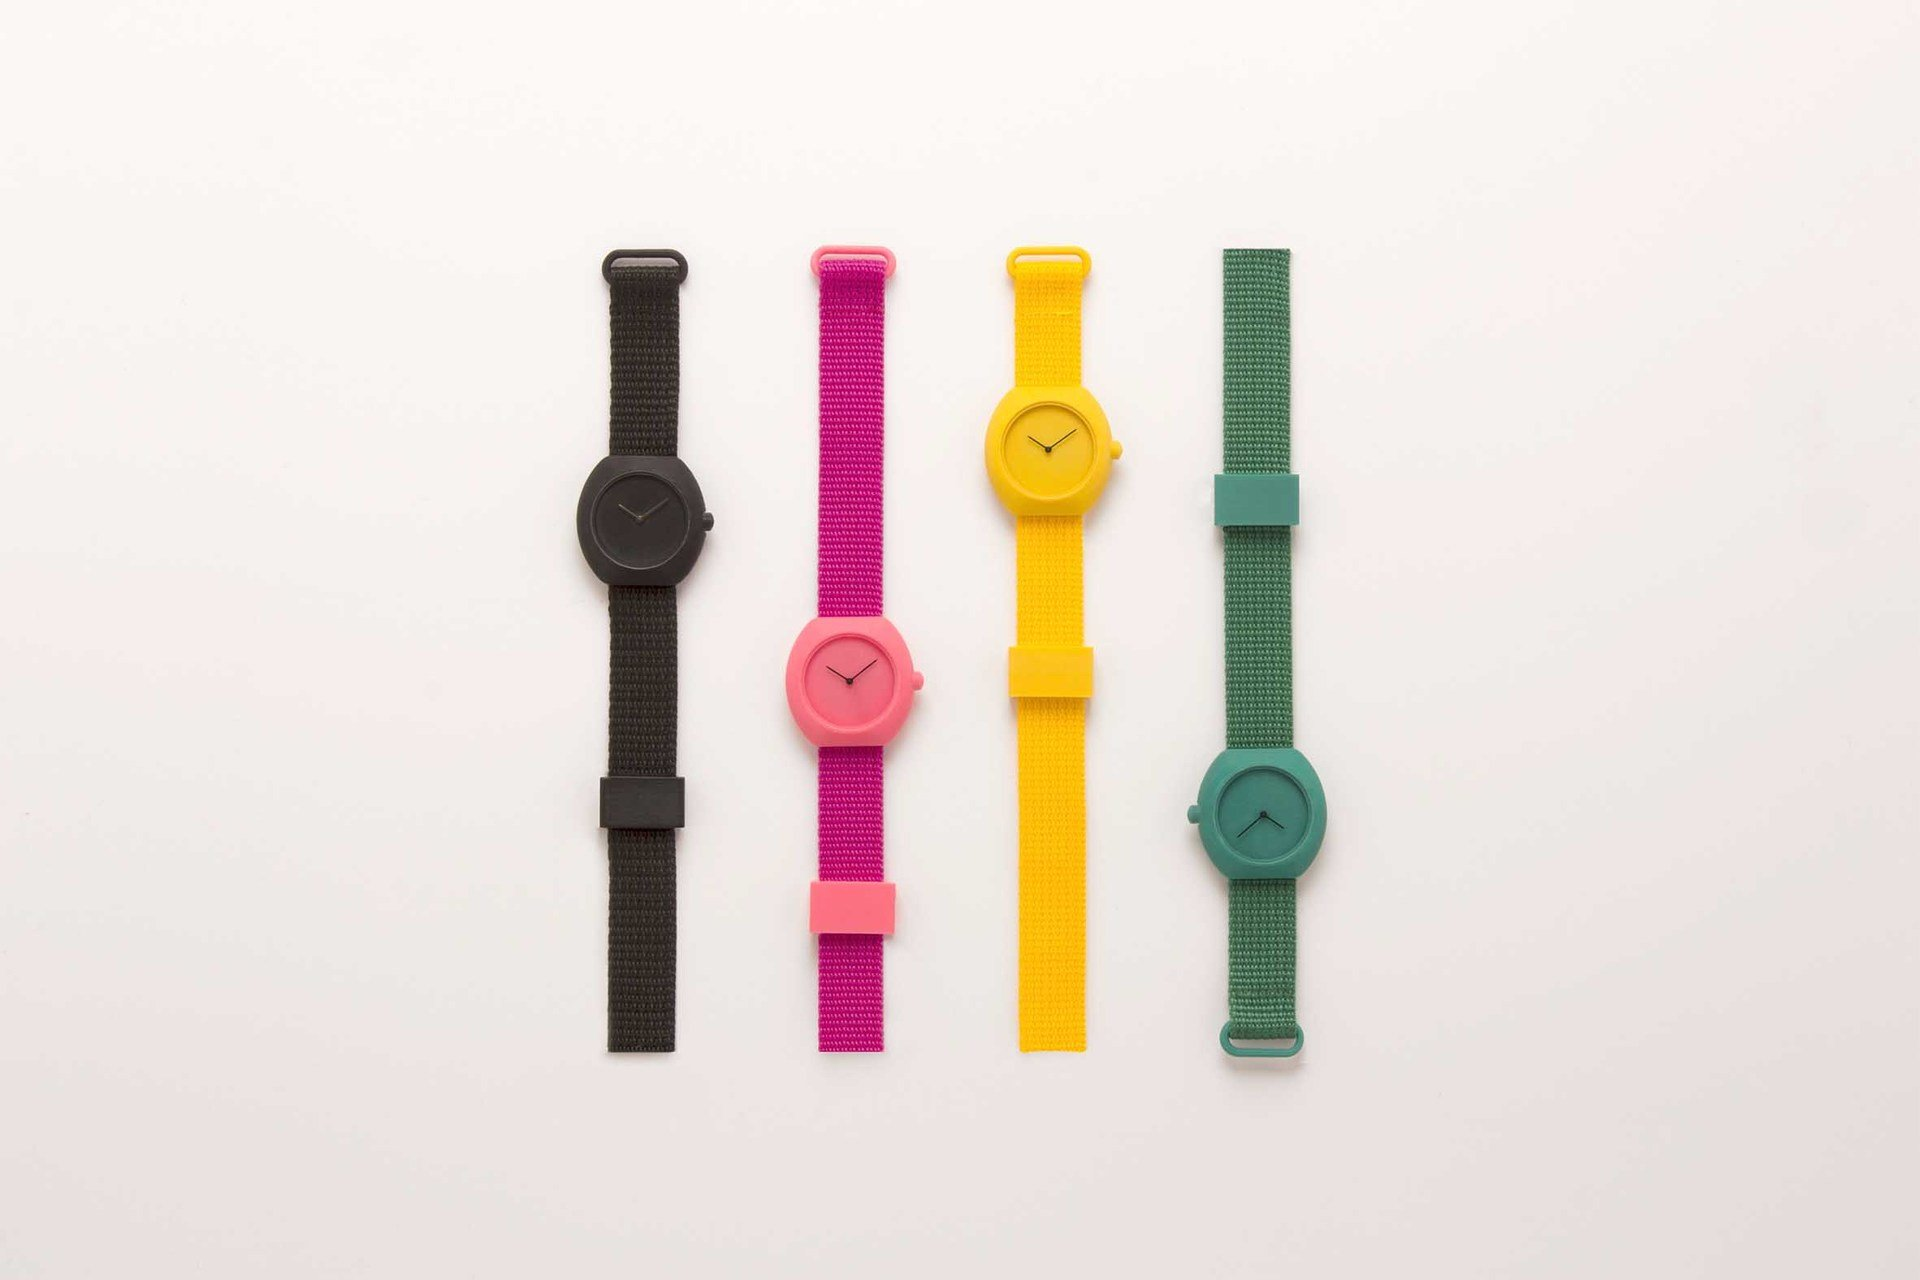 Design studio Notaroberto-Boldrini presents a collection of 3D watches printed on Zortrax m200